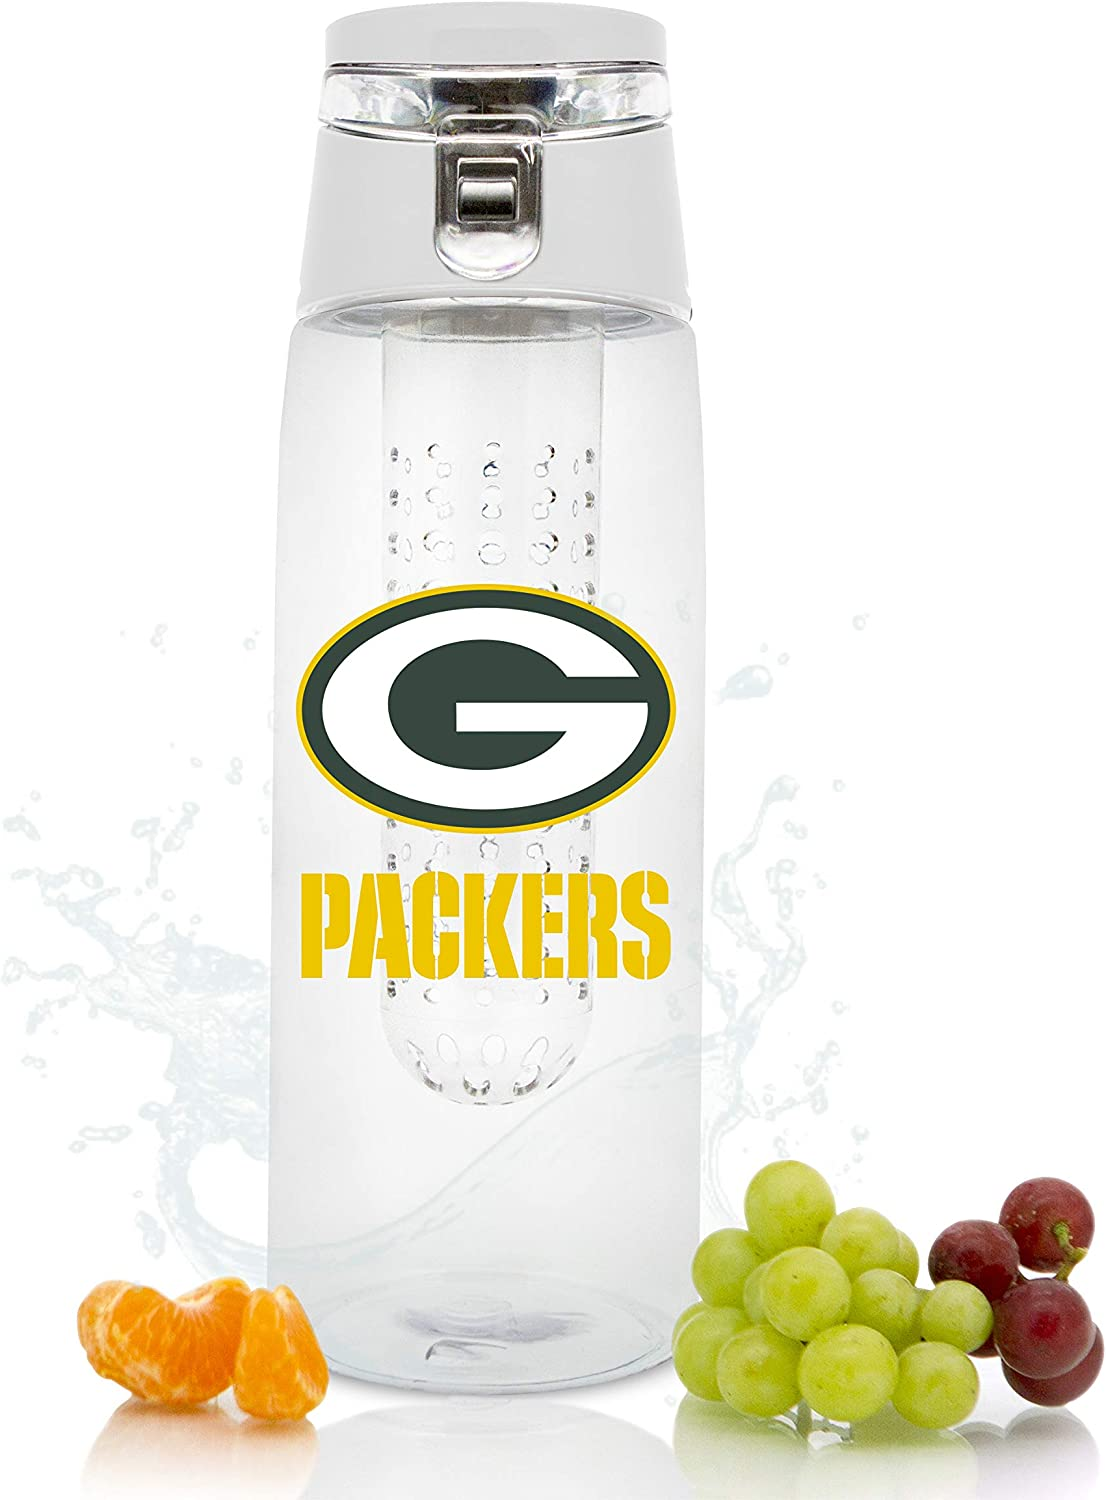 Duck House NFL unisex NFL Fruit Infuser Sport Water Bottle | Food Grade Material | Leak-Proof Flip Top Lid | Removable Infusion Rod | Easy to Clean | BPA-Free | 20oz